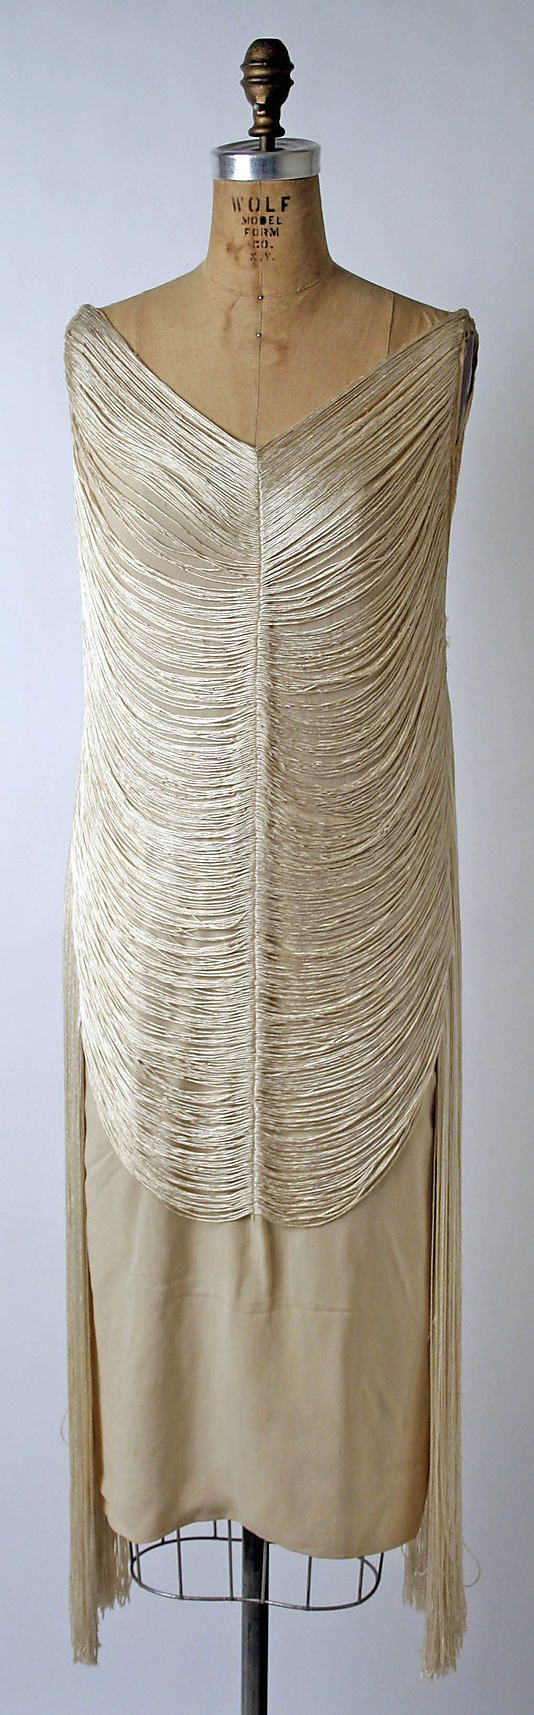 Vionnet evening dress 1925